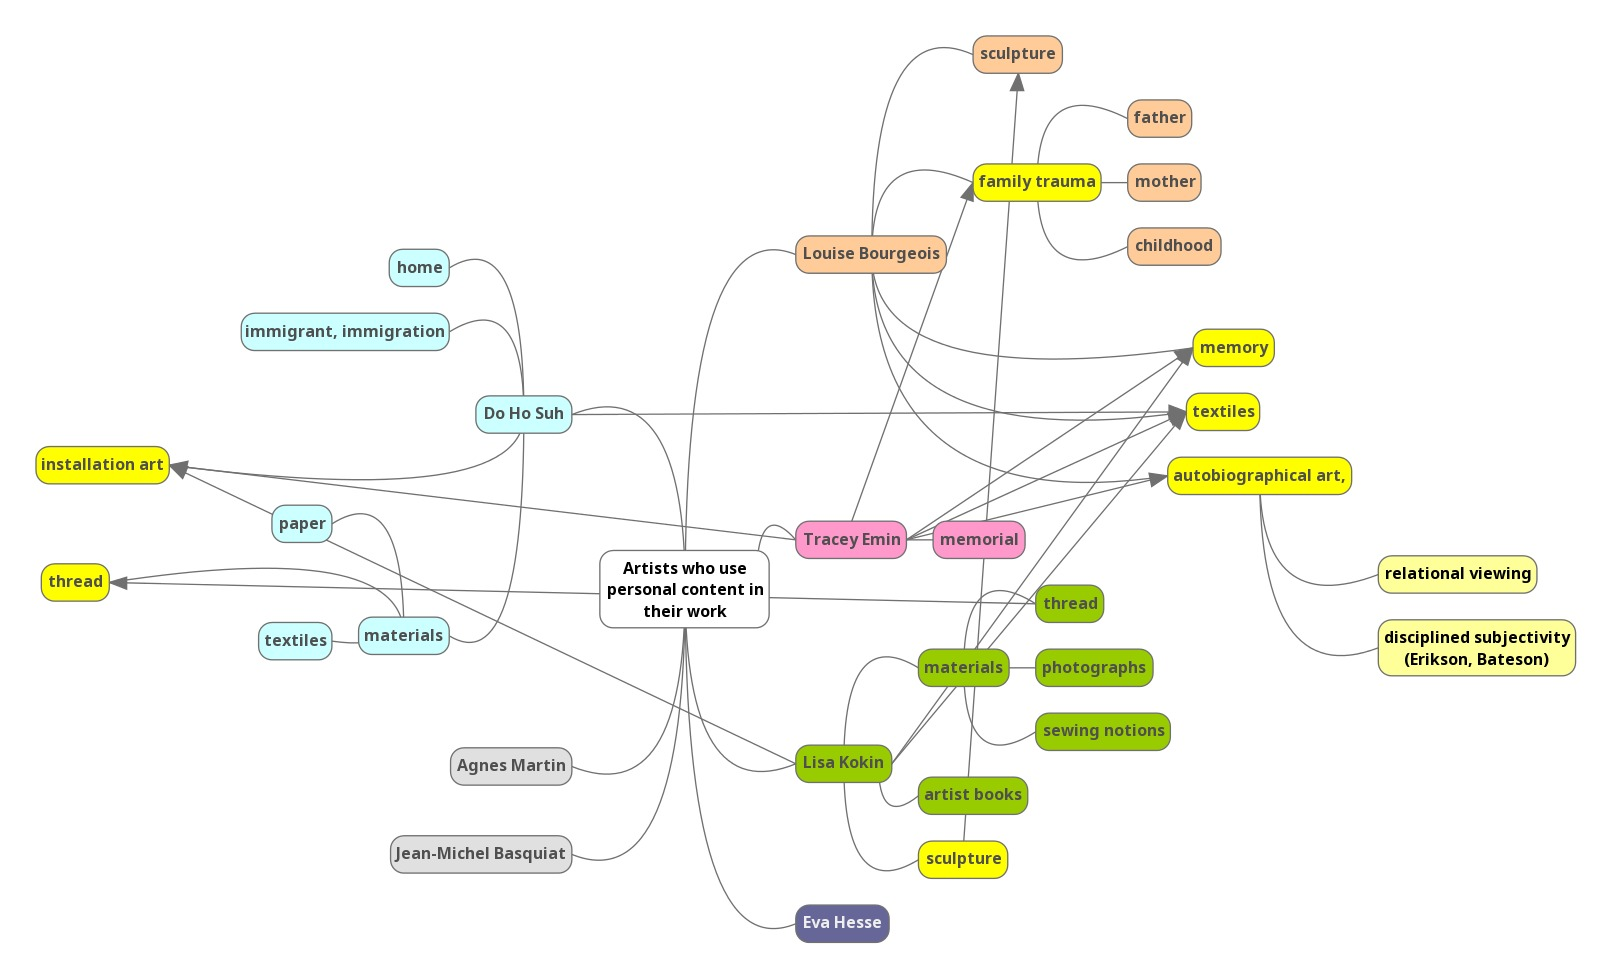 Mindmap for Autobiographical Art (v1).